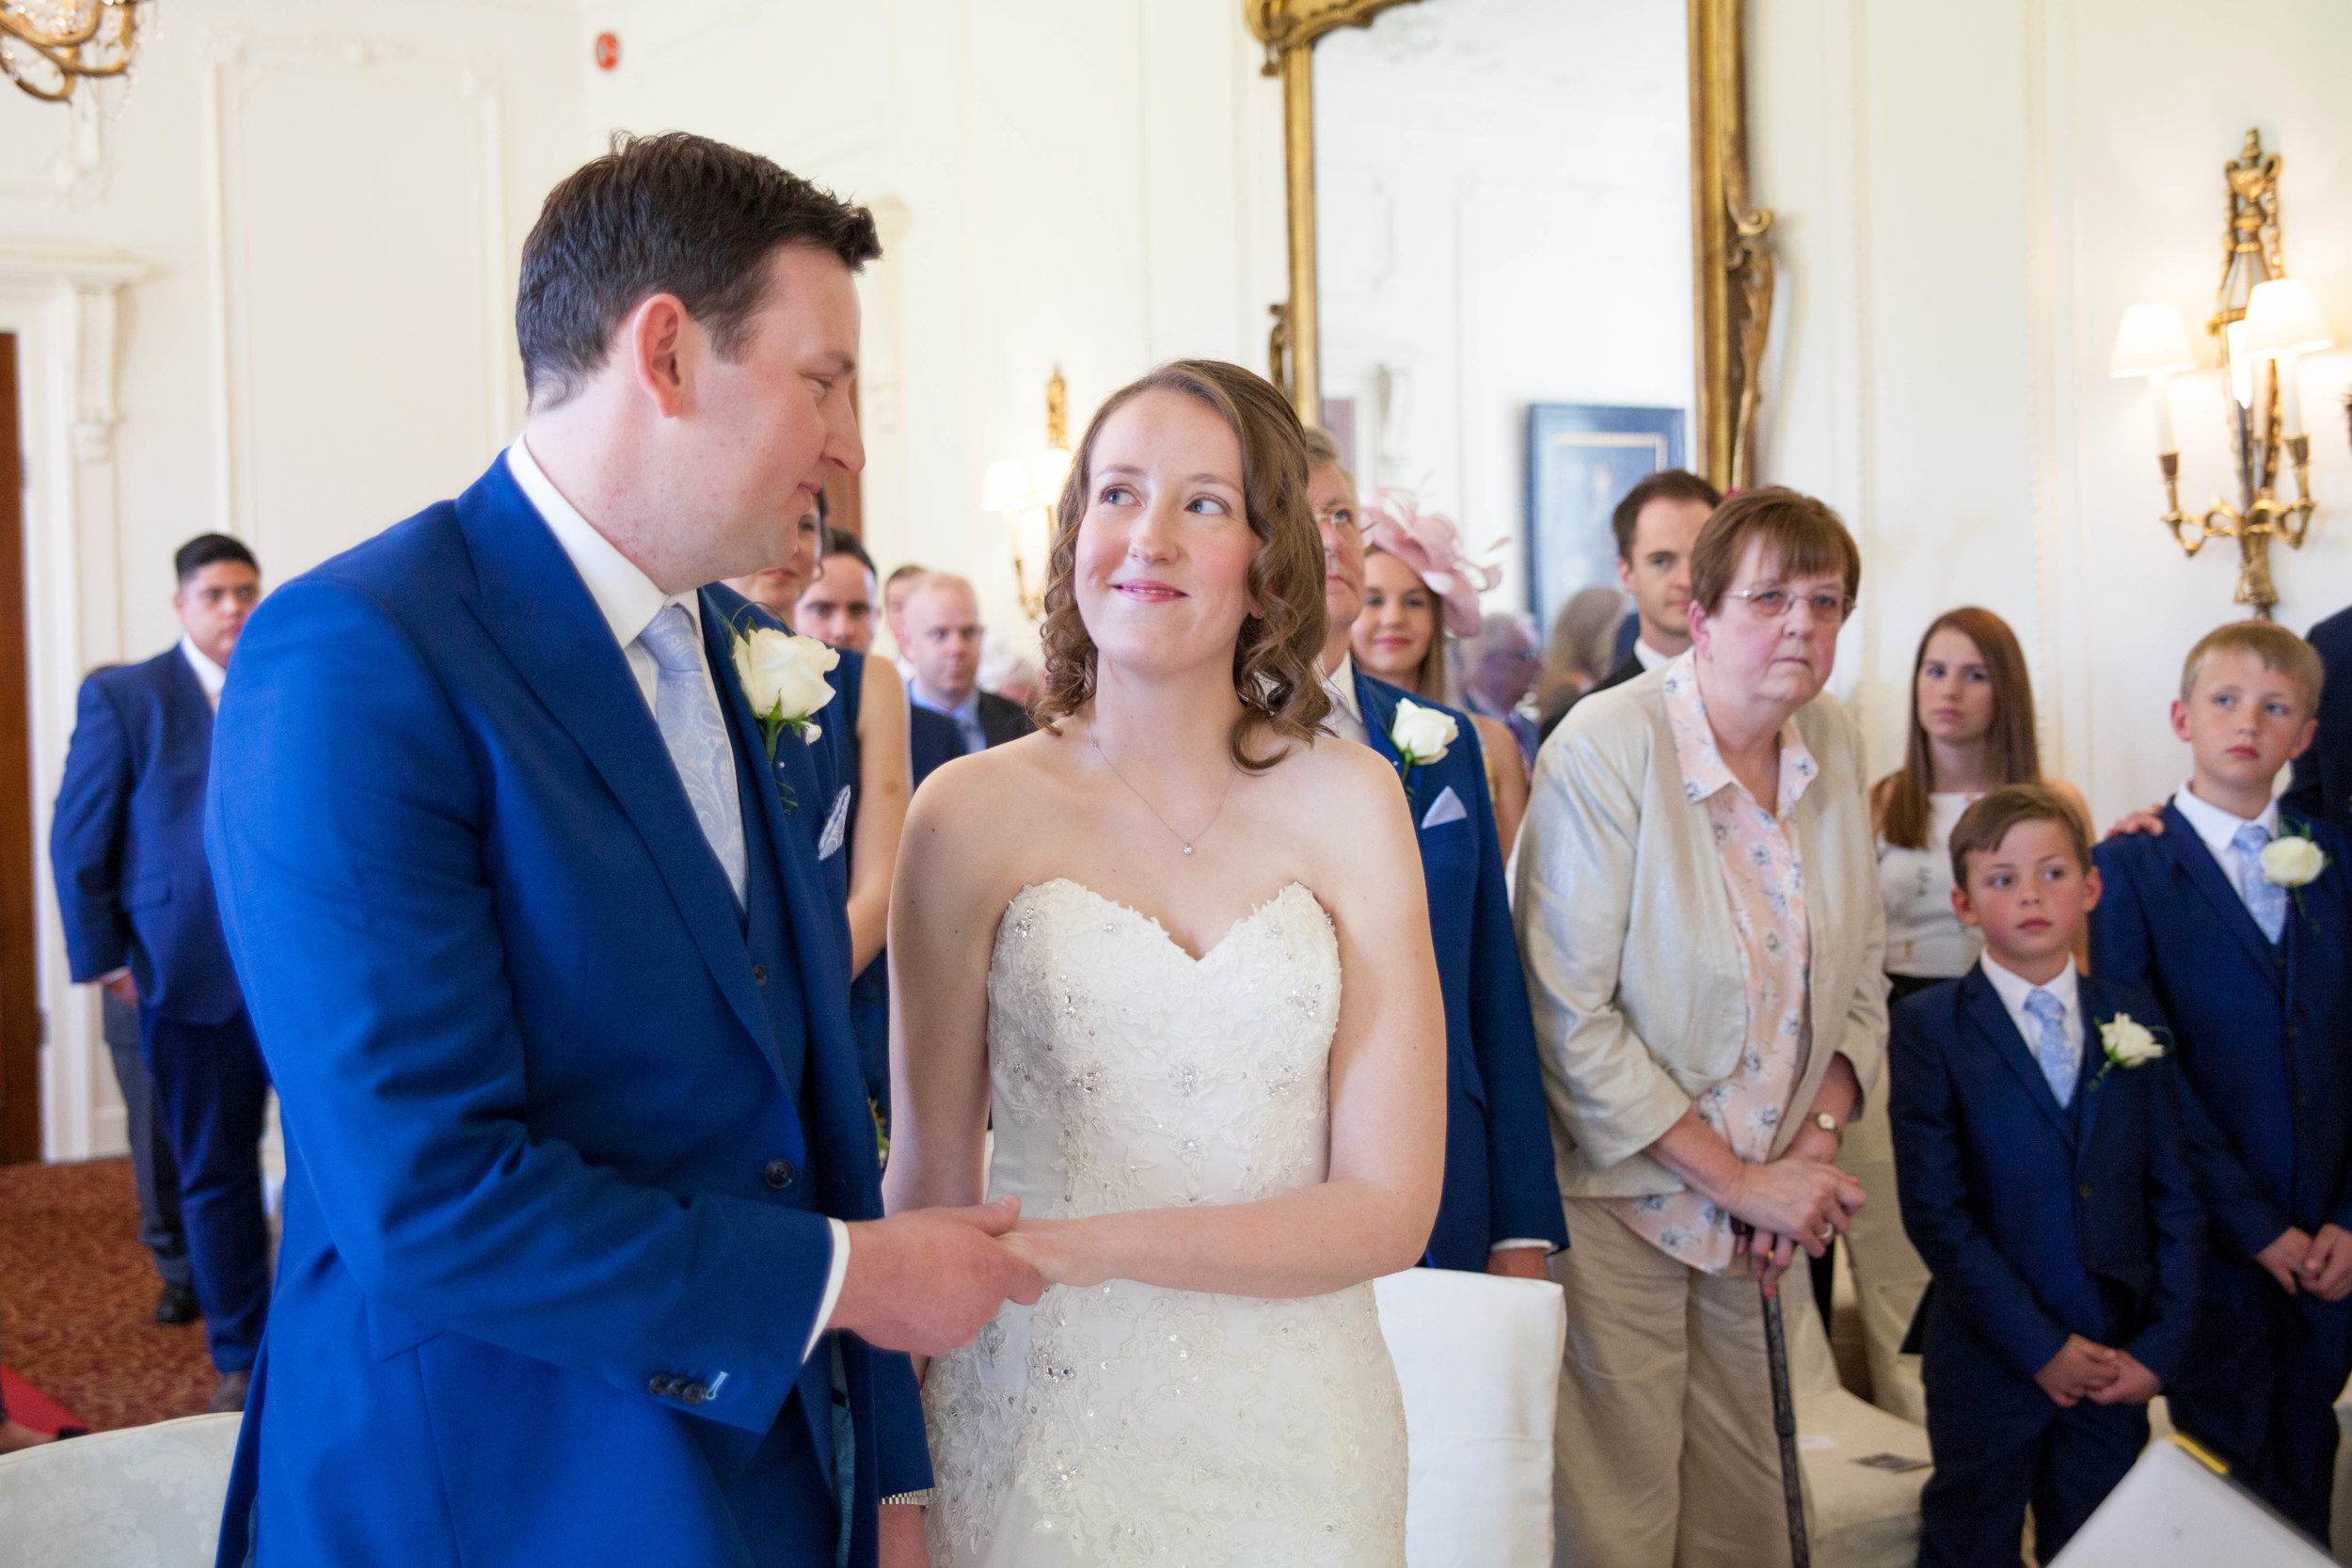 NLPhotography_Taplow_House-Wedding_Photographer_Emily&Alan_C-266.jpg